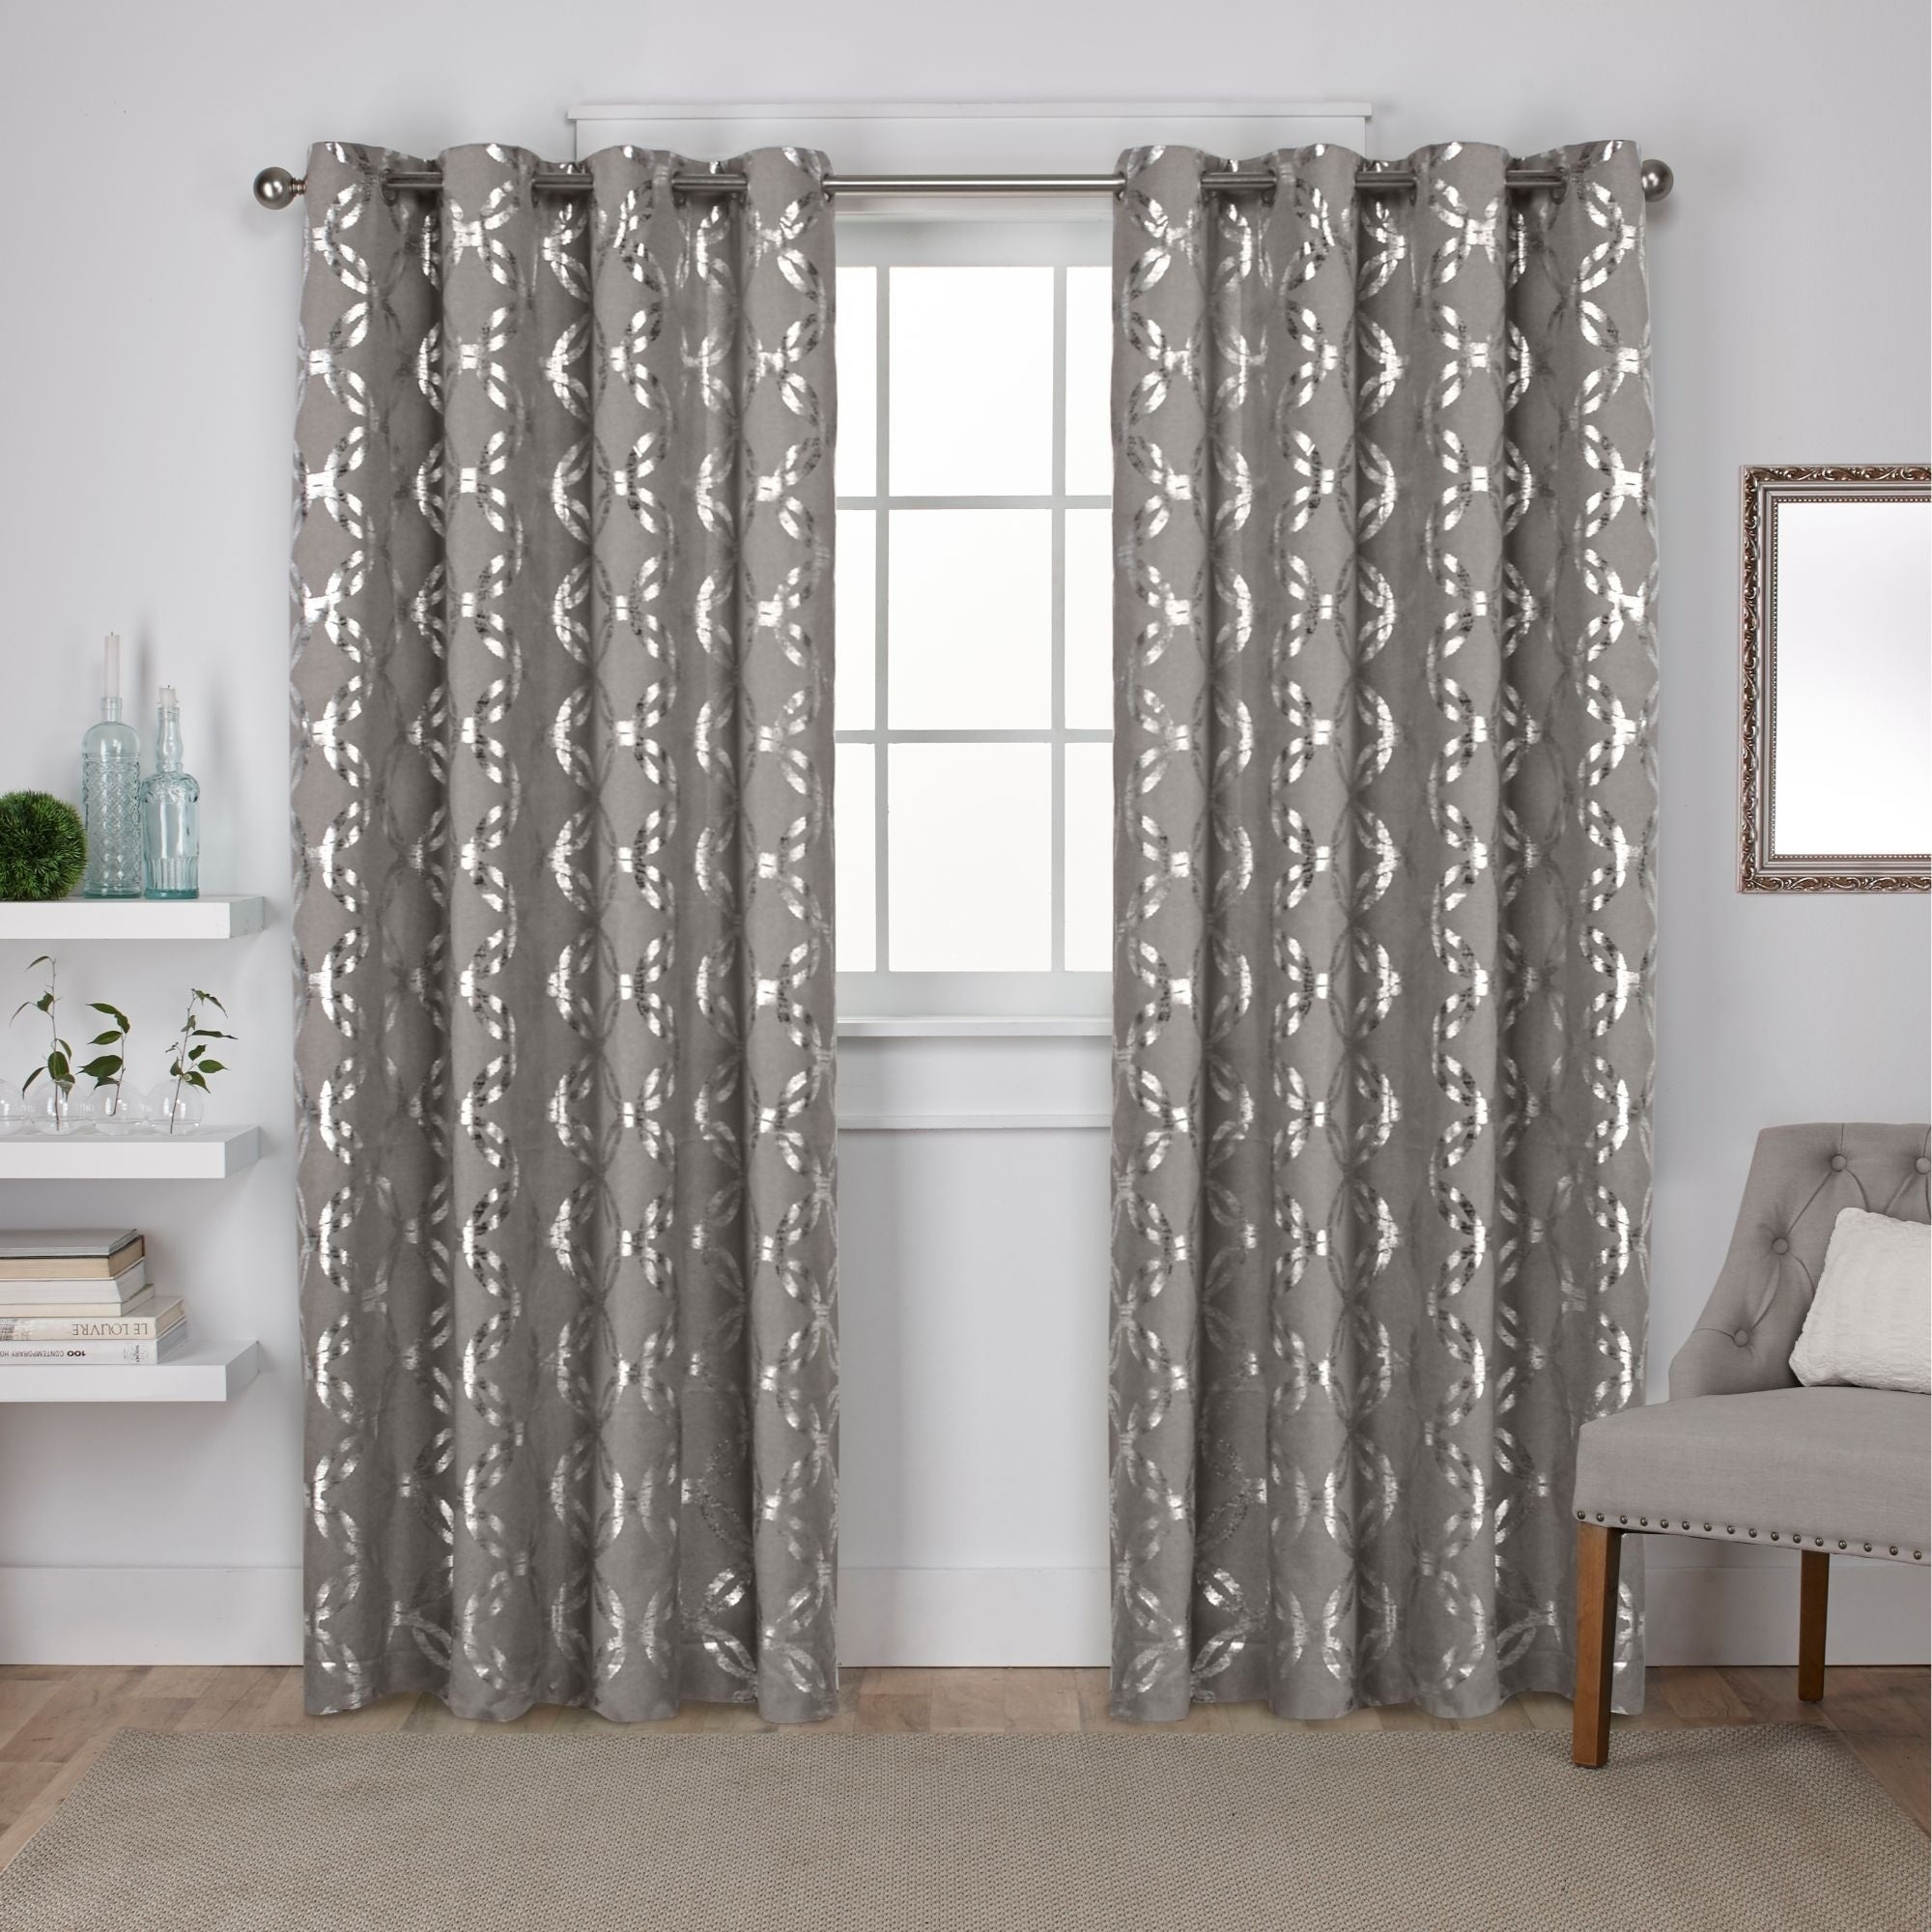 The Curated Nomad Sloat Metallic Geometric Grommet Top Curtain Panel Pair With Regard To The Curated Nomad Duane Blackout Curtain Panel Pairs (View 24 of 30)